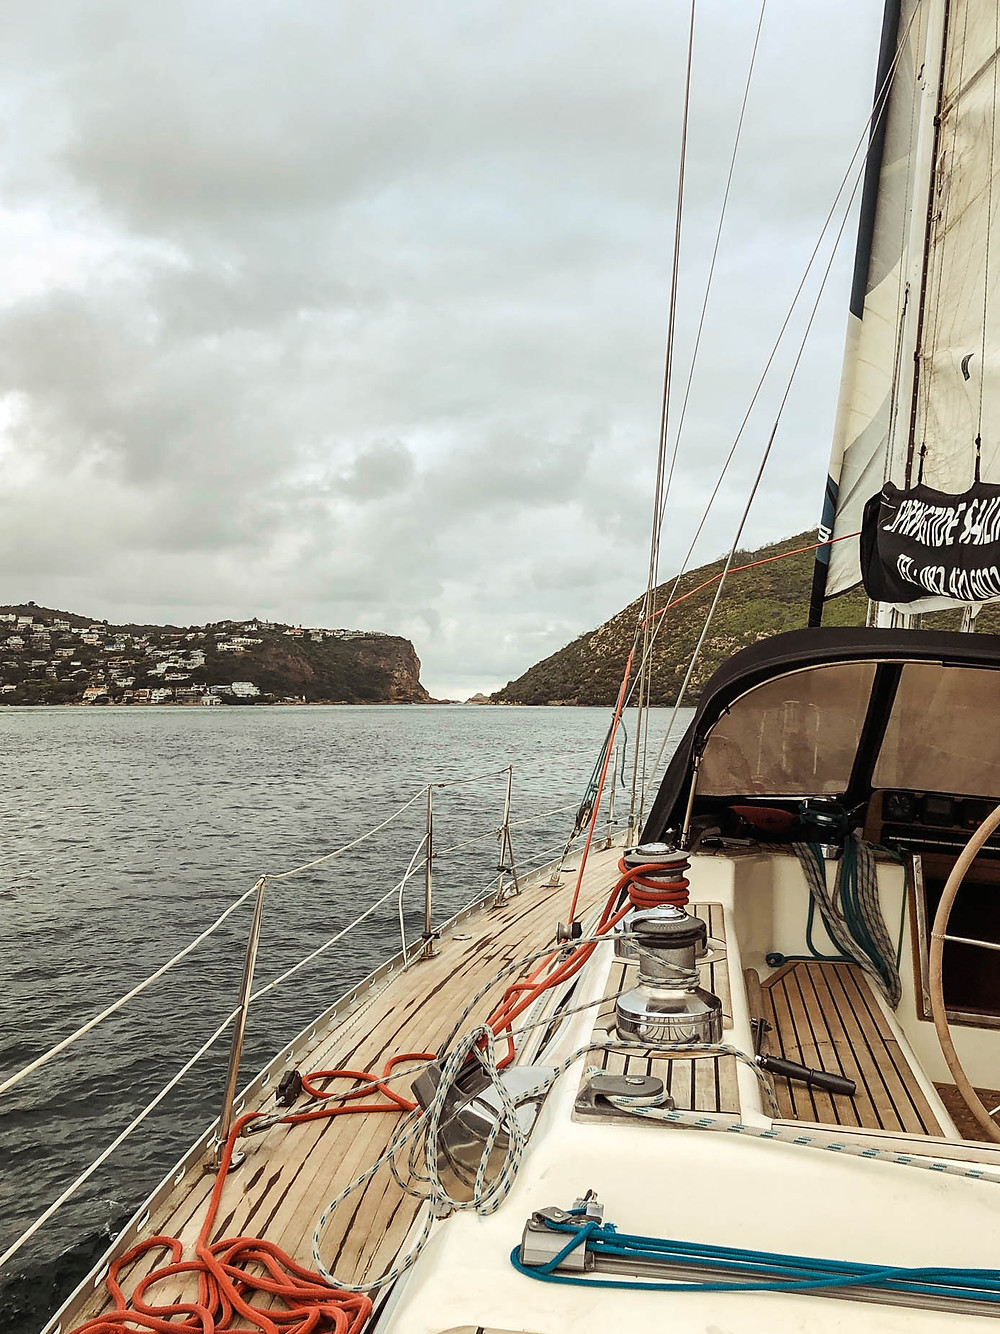 Sailing directly into the Knysna Heads - Indian Ocean on the far side